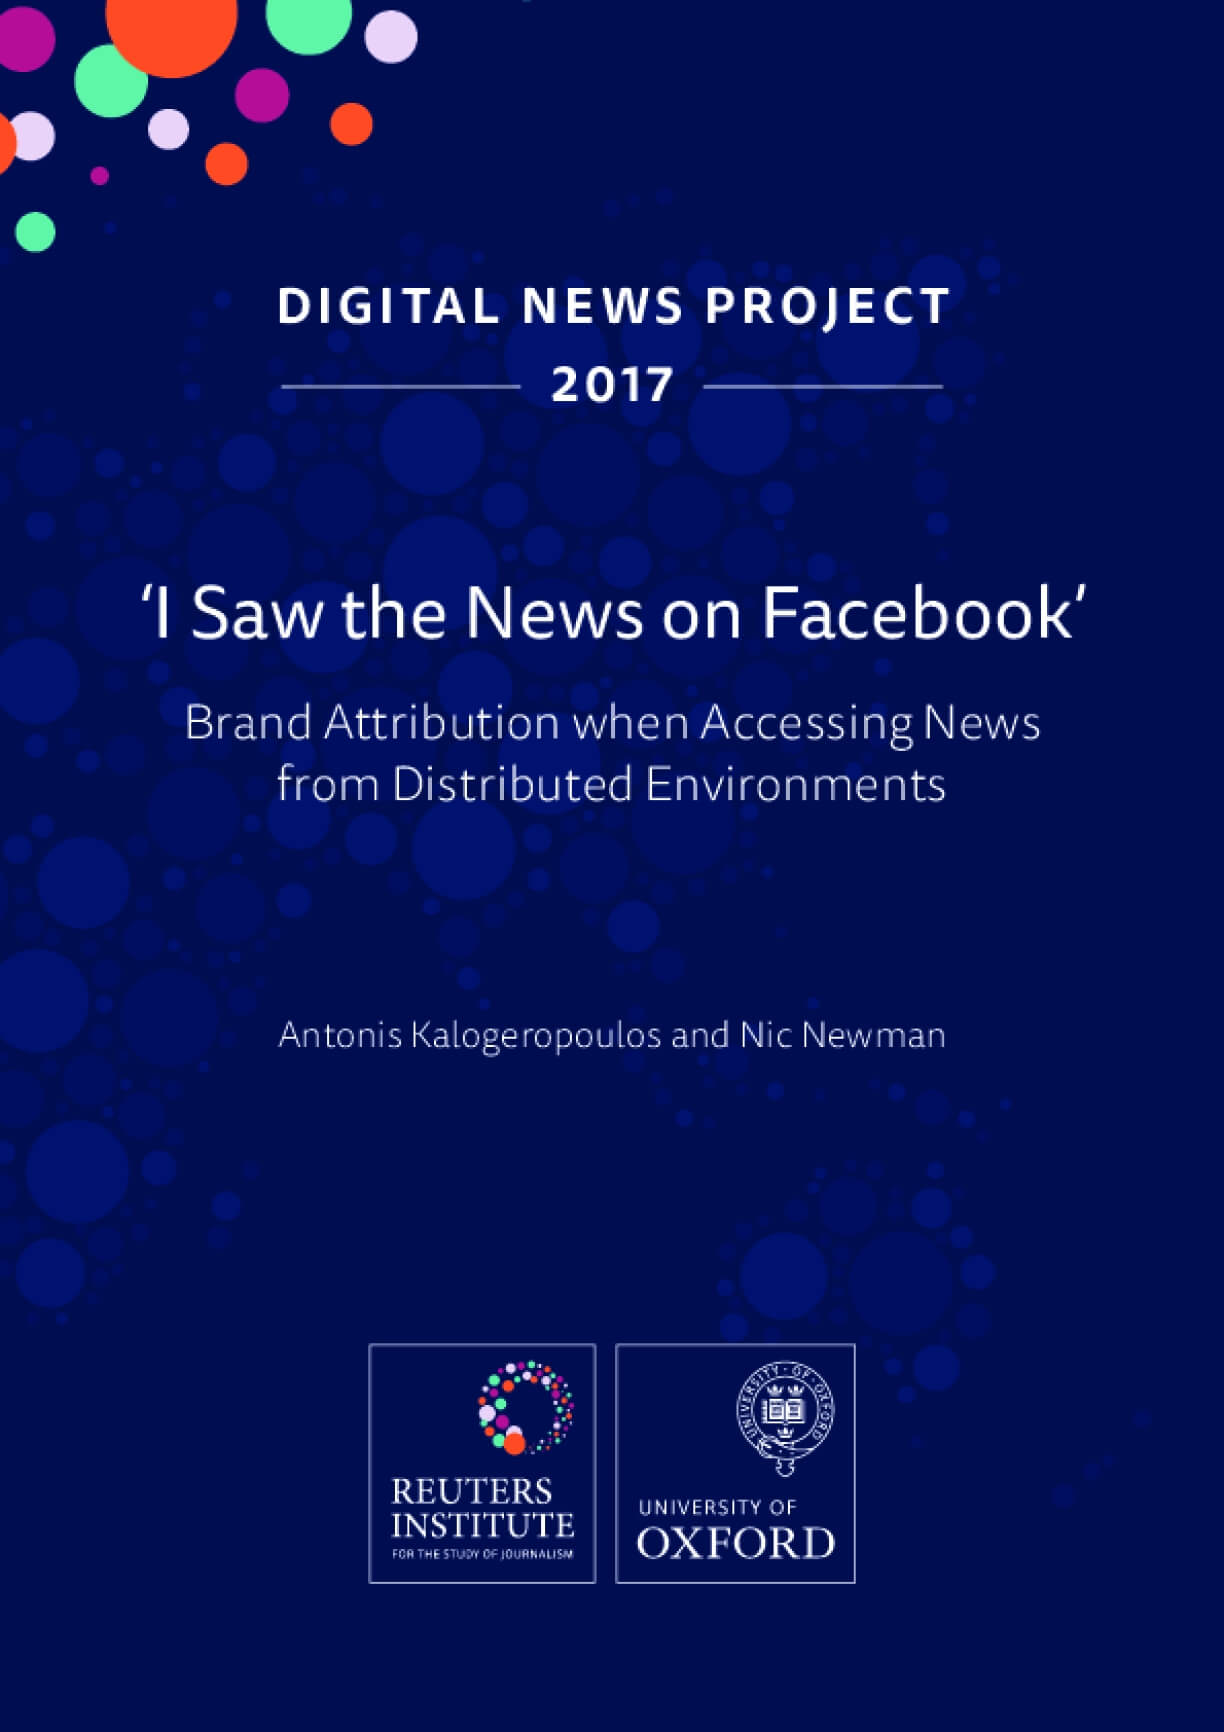 'I Saw the News on Facebook': Brand Attribution when Accessing News from Distributed Environments